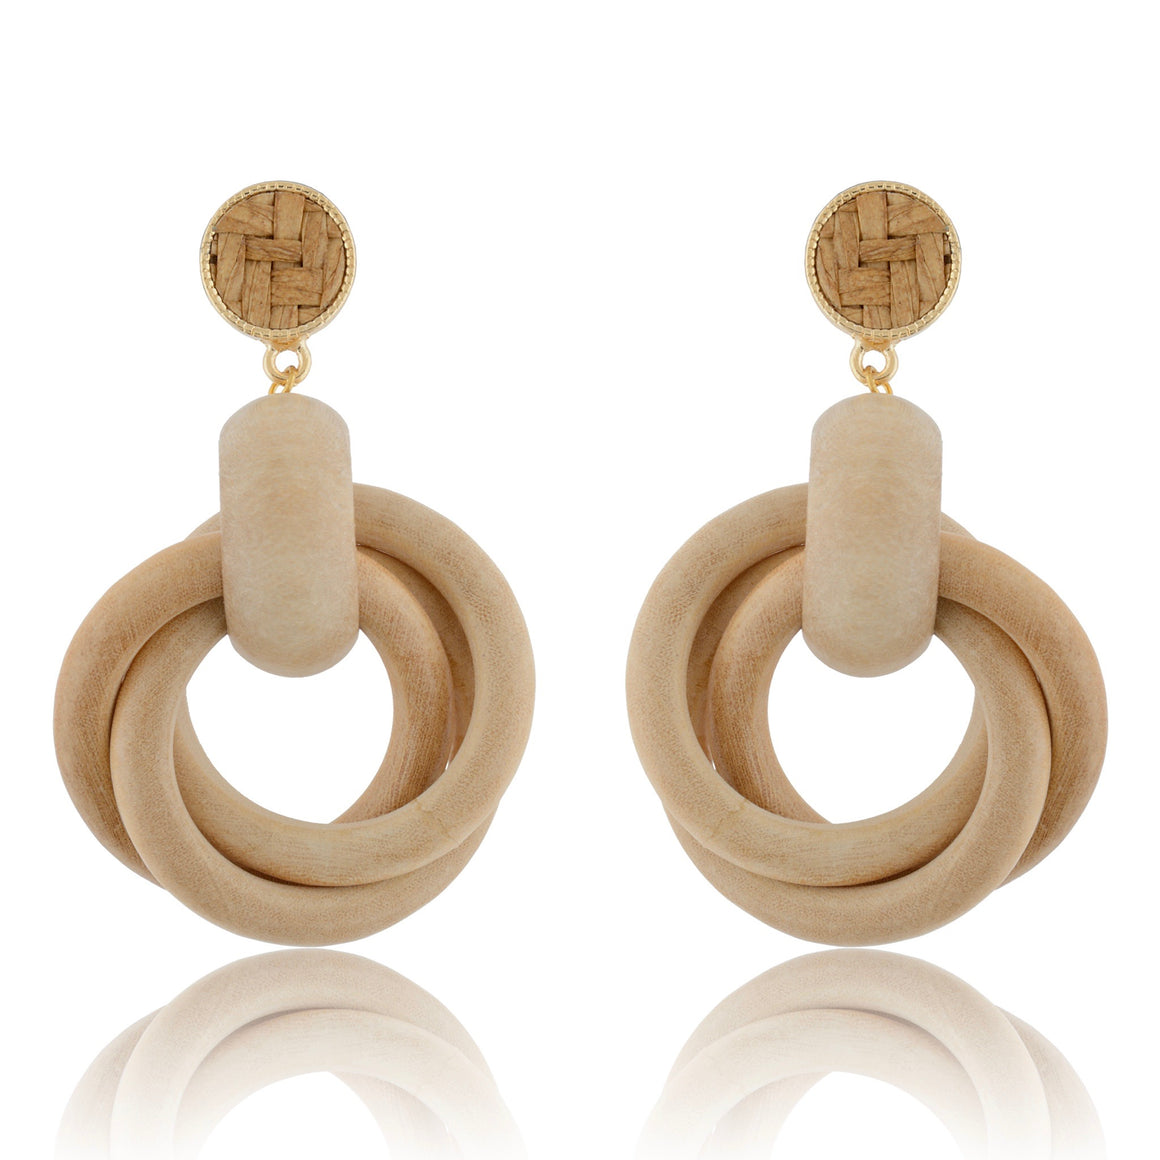 The Wood Knot Earrings